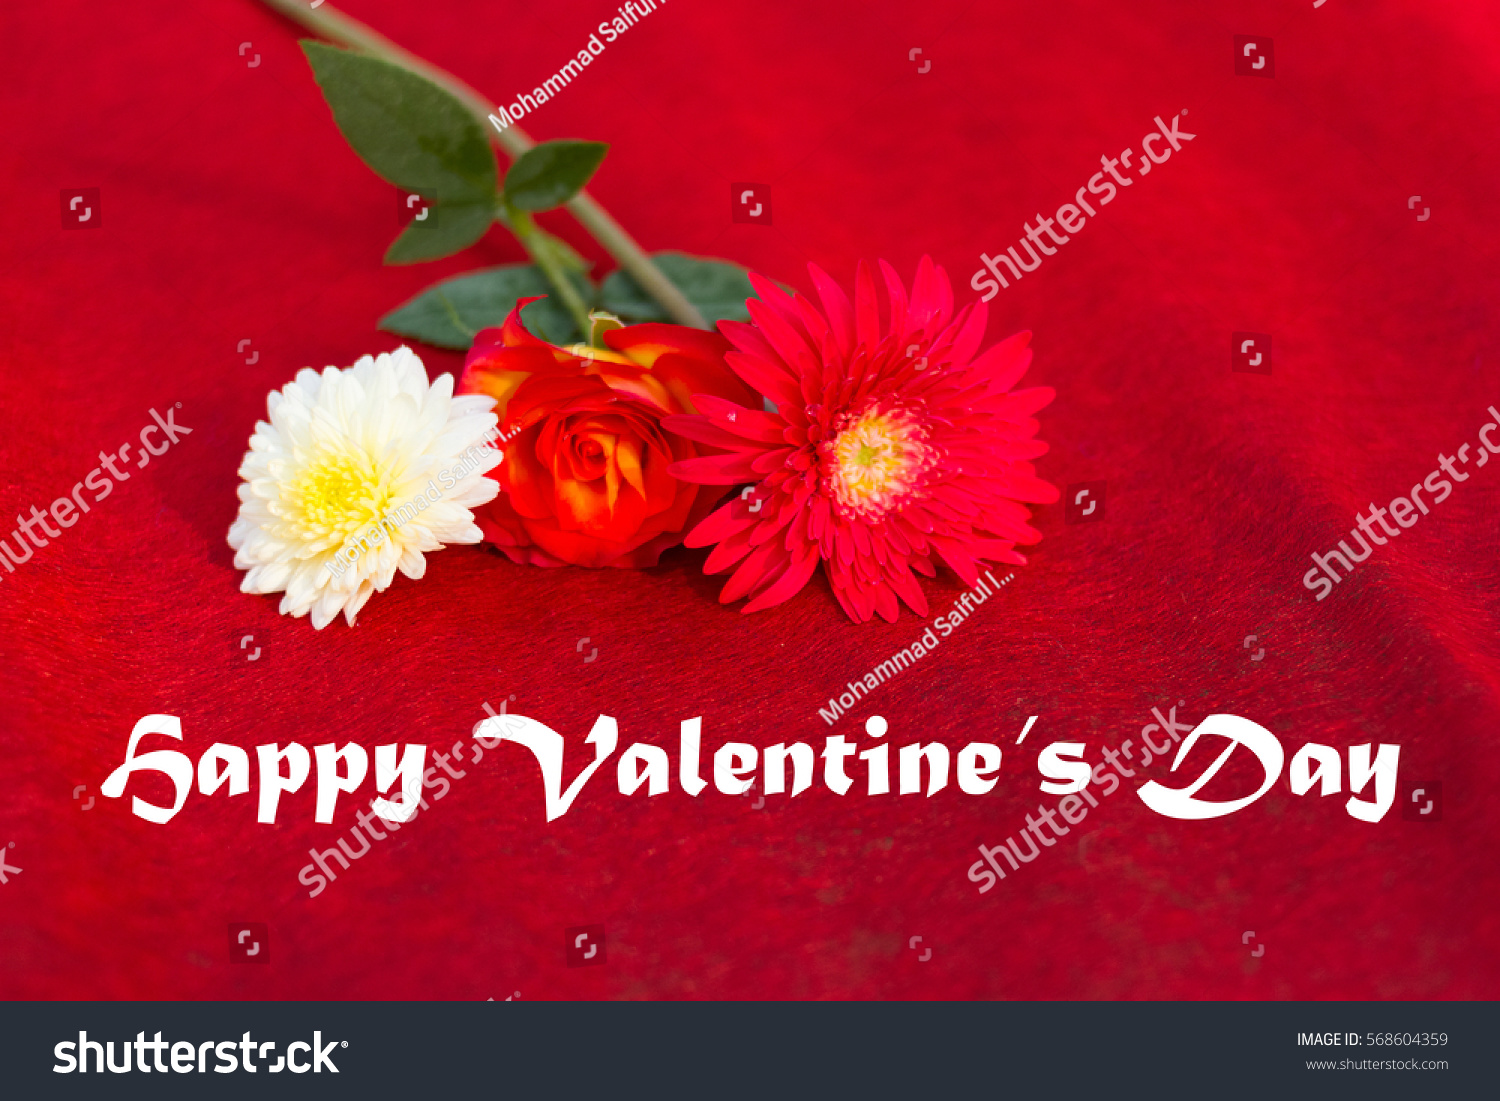 Happy valentines day valentines day greetings stock photo 568604359 happy valentines day valentines day greetings on red background with beautiful kristyandbryce Choice Image